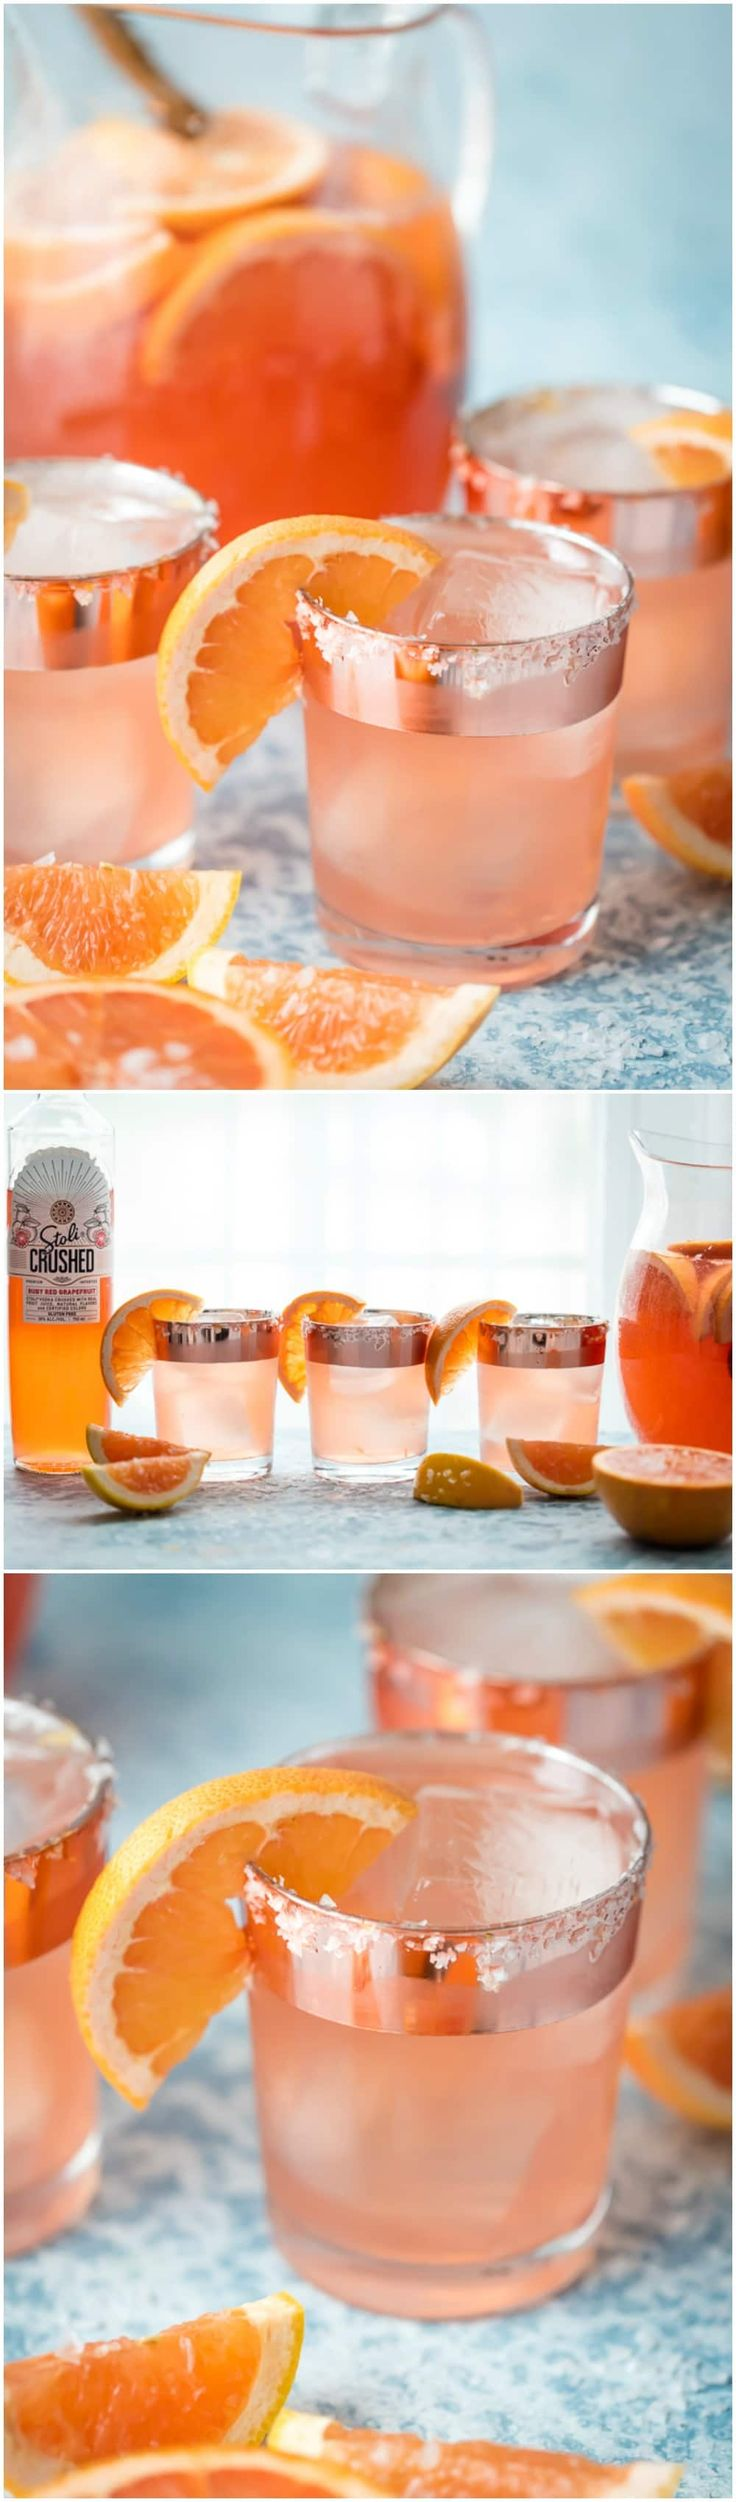 SALTY DOG SANGRIA is the ultimate refreshing Summer cocktail! Grapefruit vodka, juice, rose, club soda, and simple syrup come together in one refreshing and beautiful sip. via @beckygallhardin